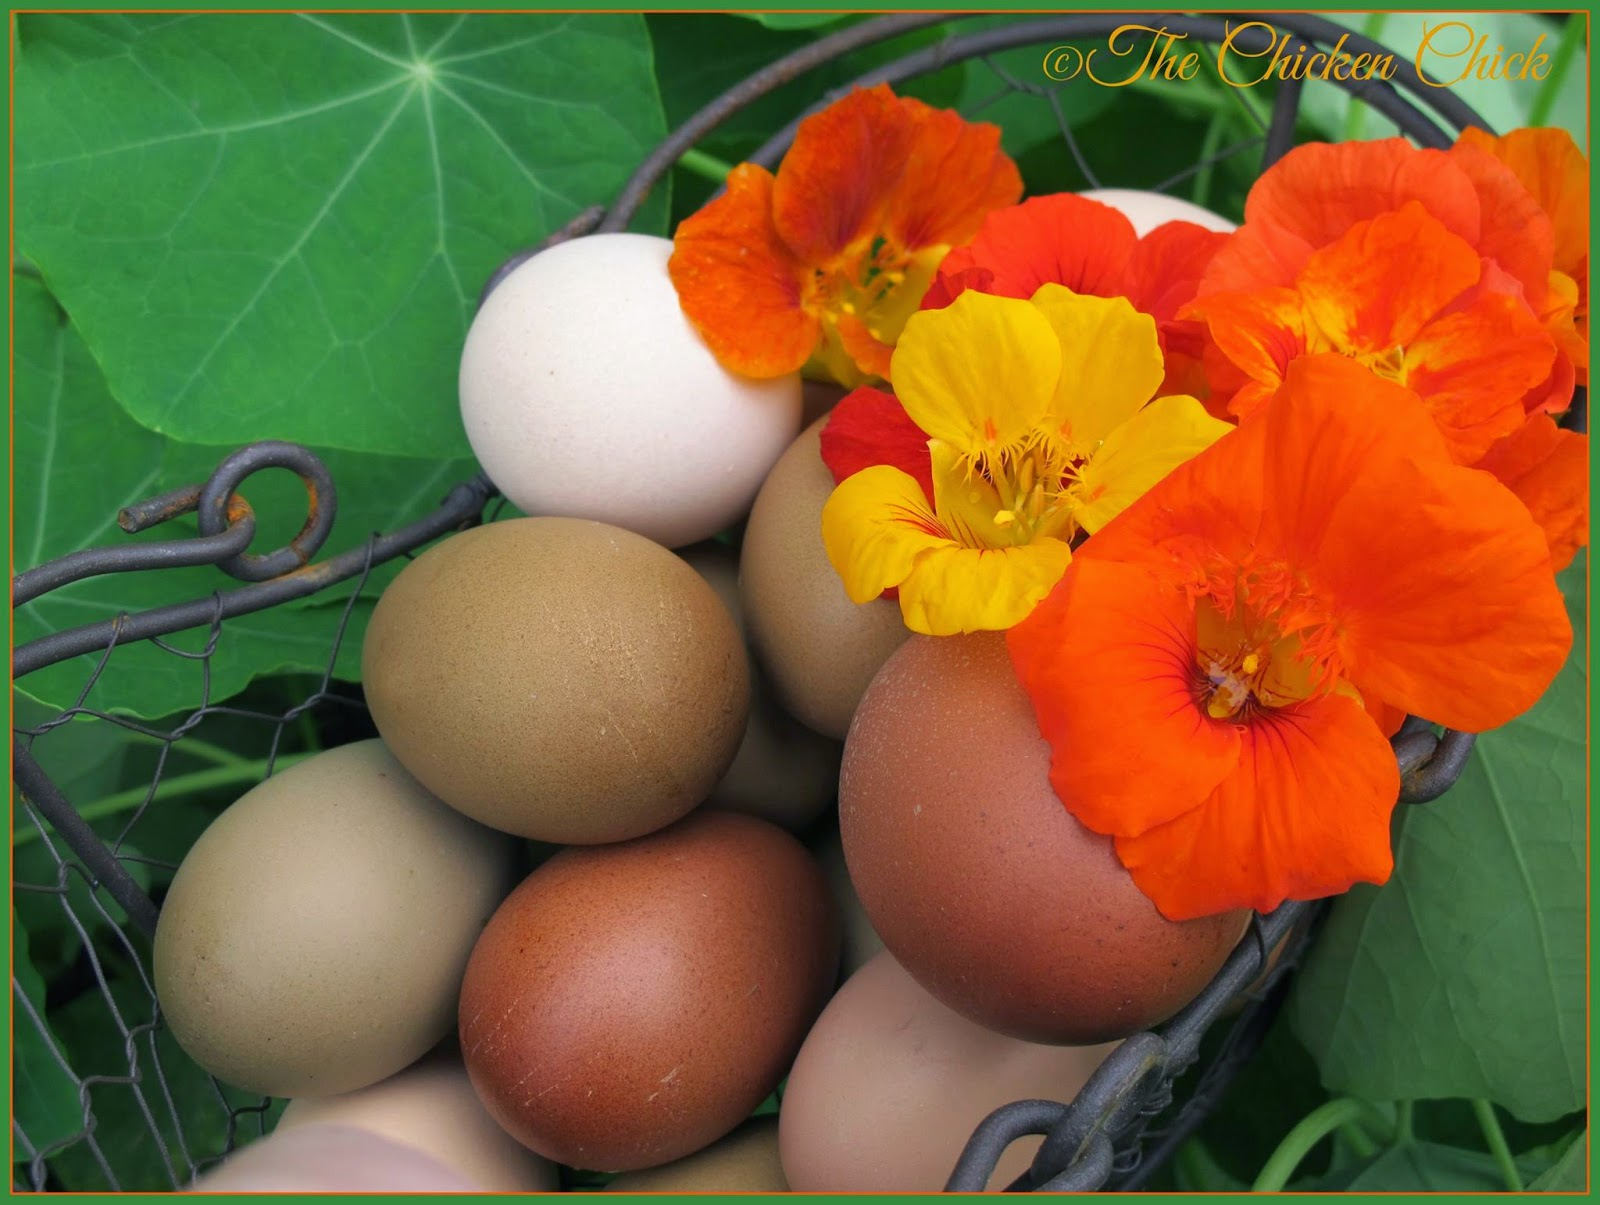 Eggs and nasturtium